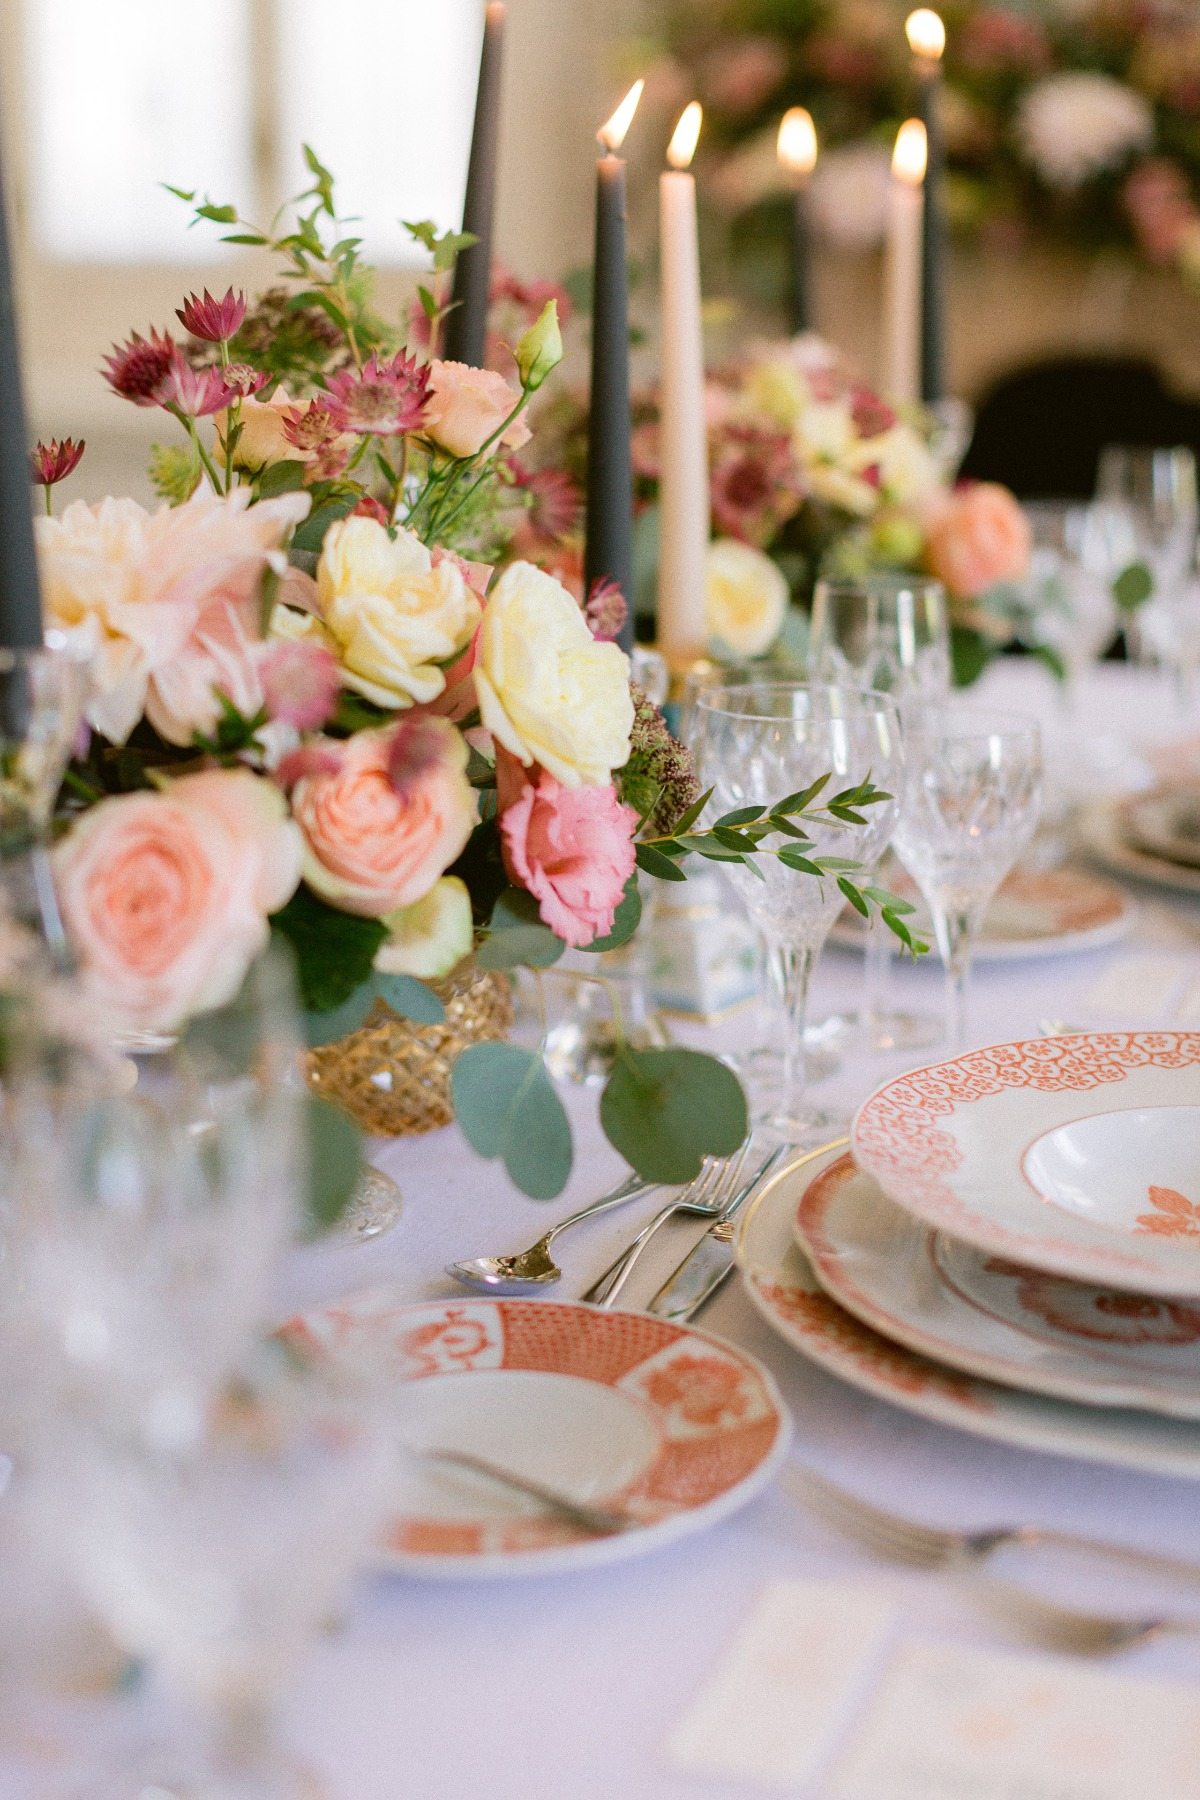 elegant and refined wedding reception